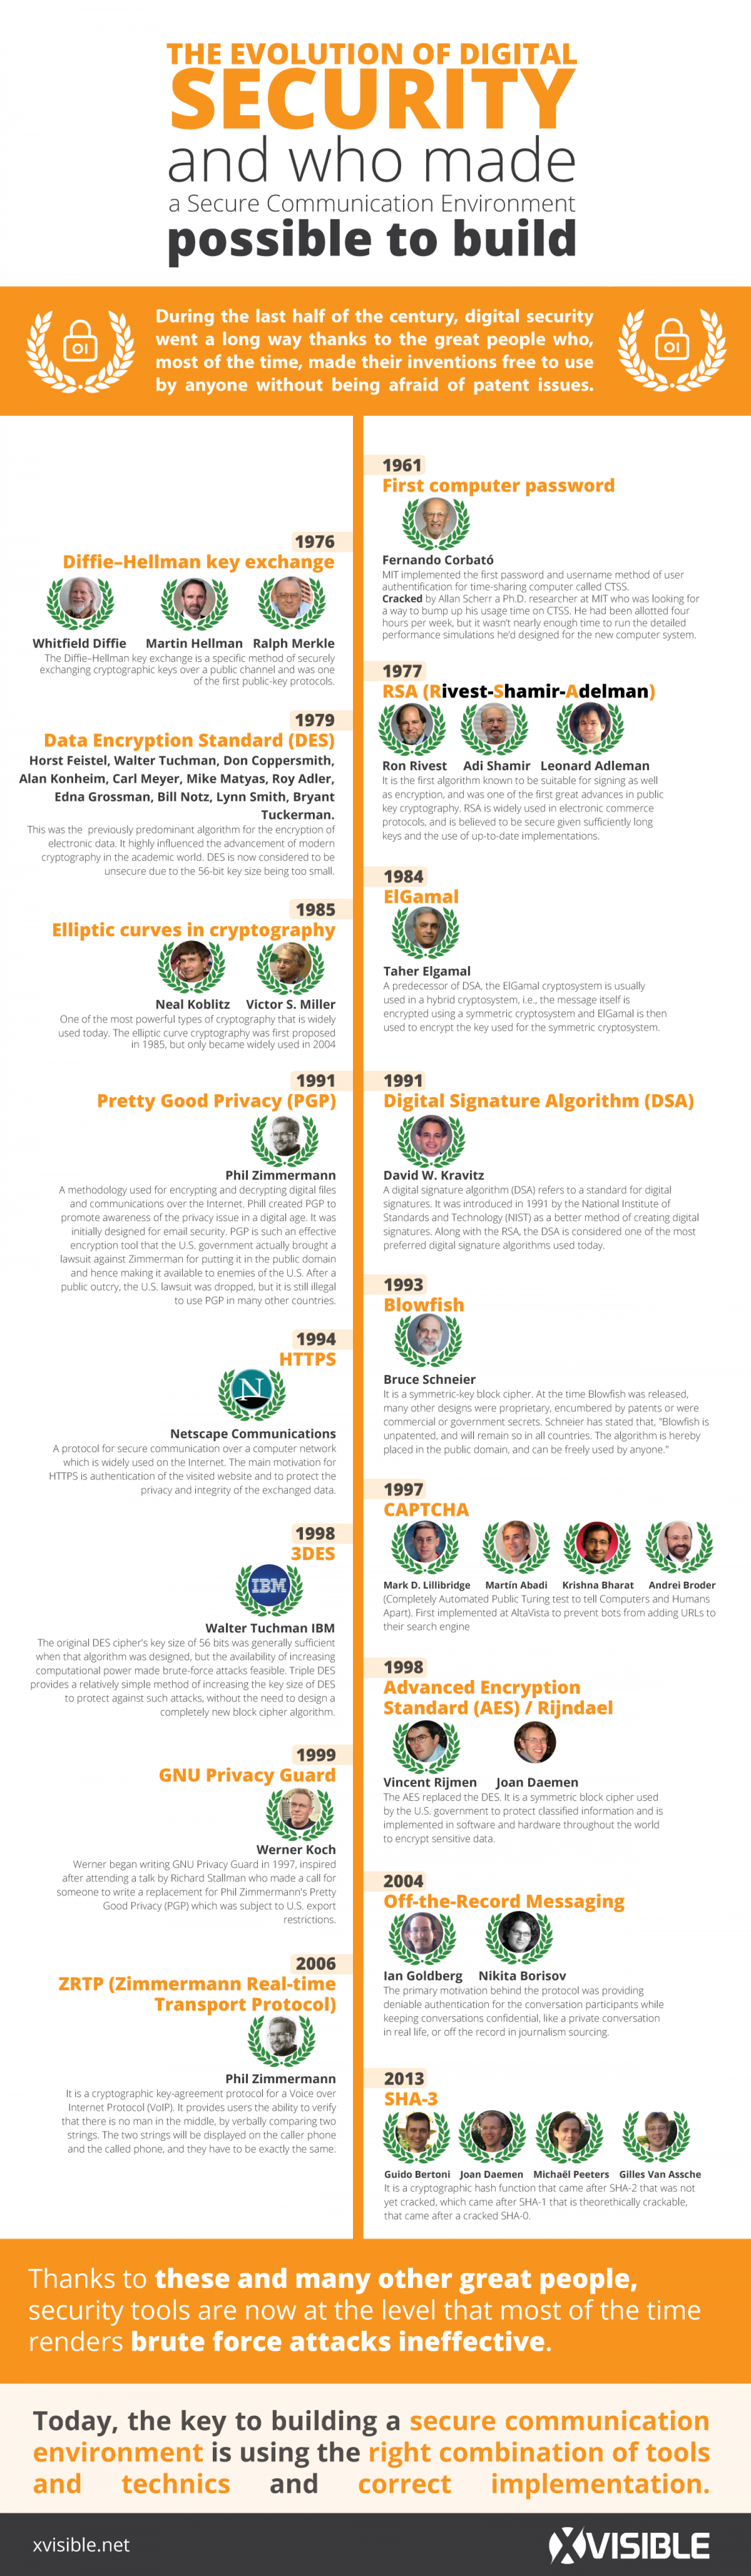 the Evolution of Digital Security Infographic